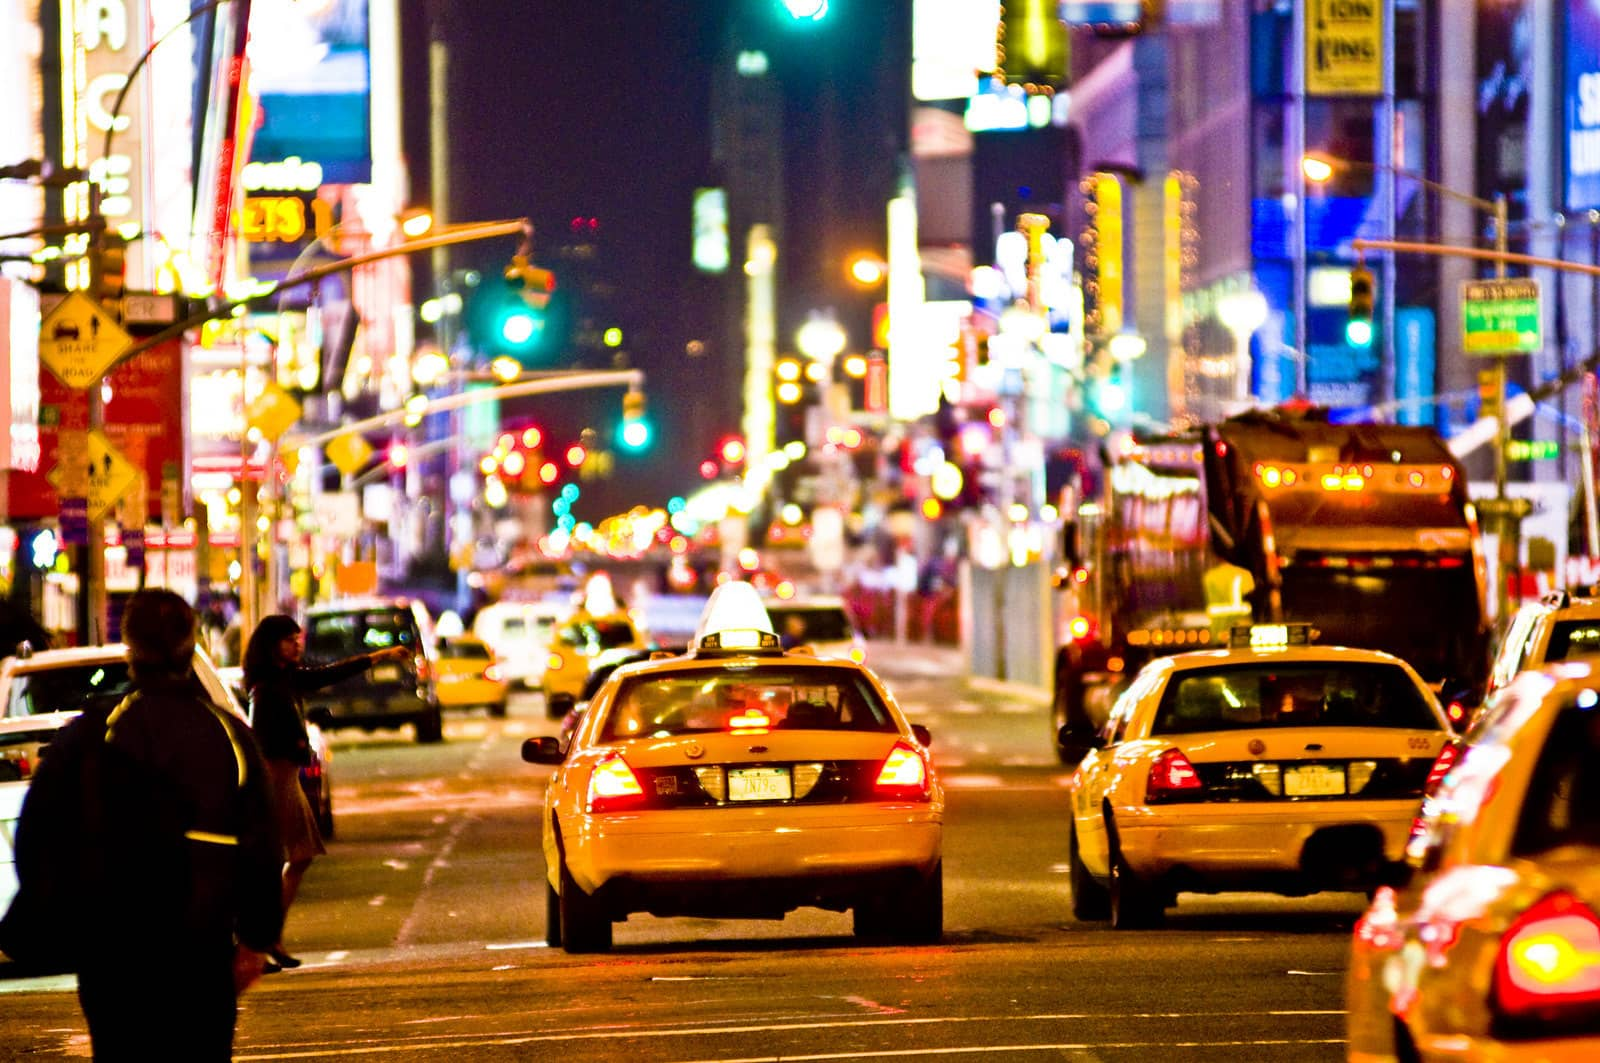 Nighttime photograph of taxicabs on the street in Times Square, New York City